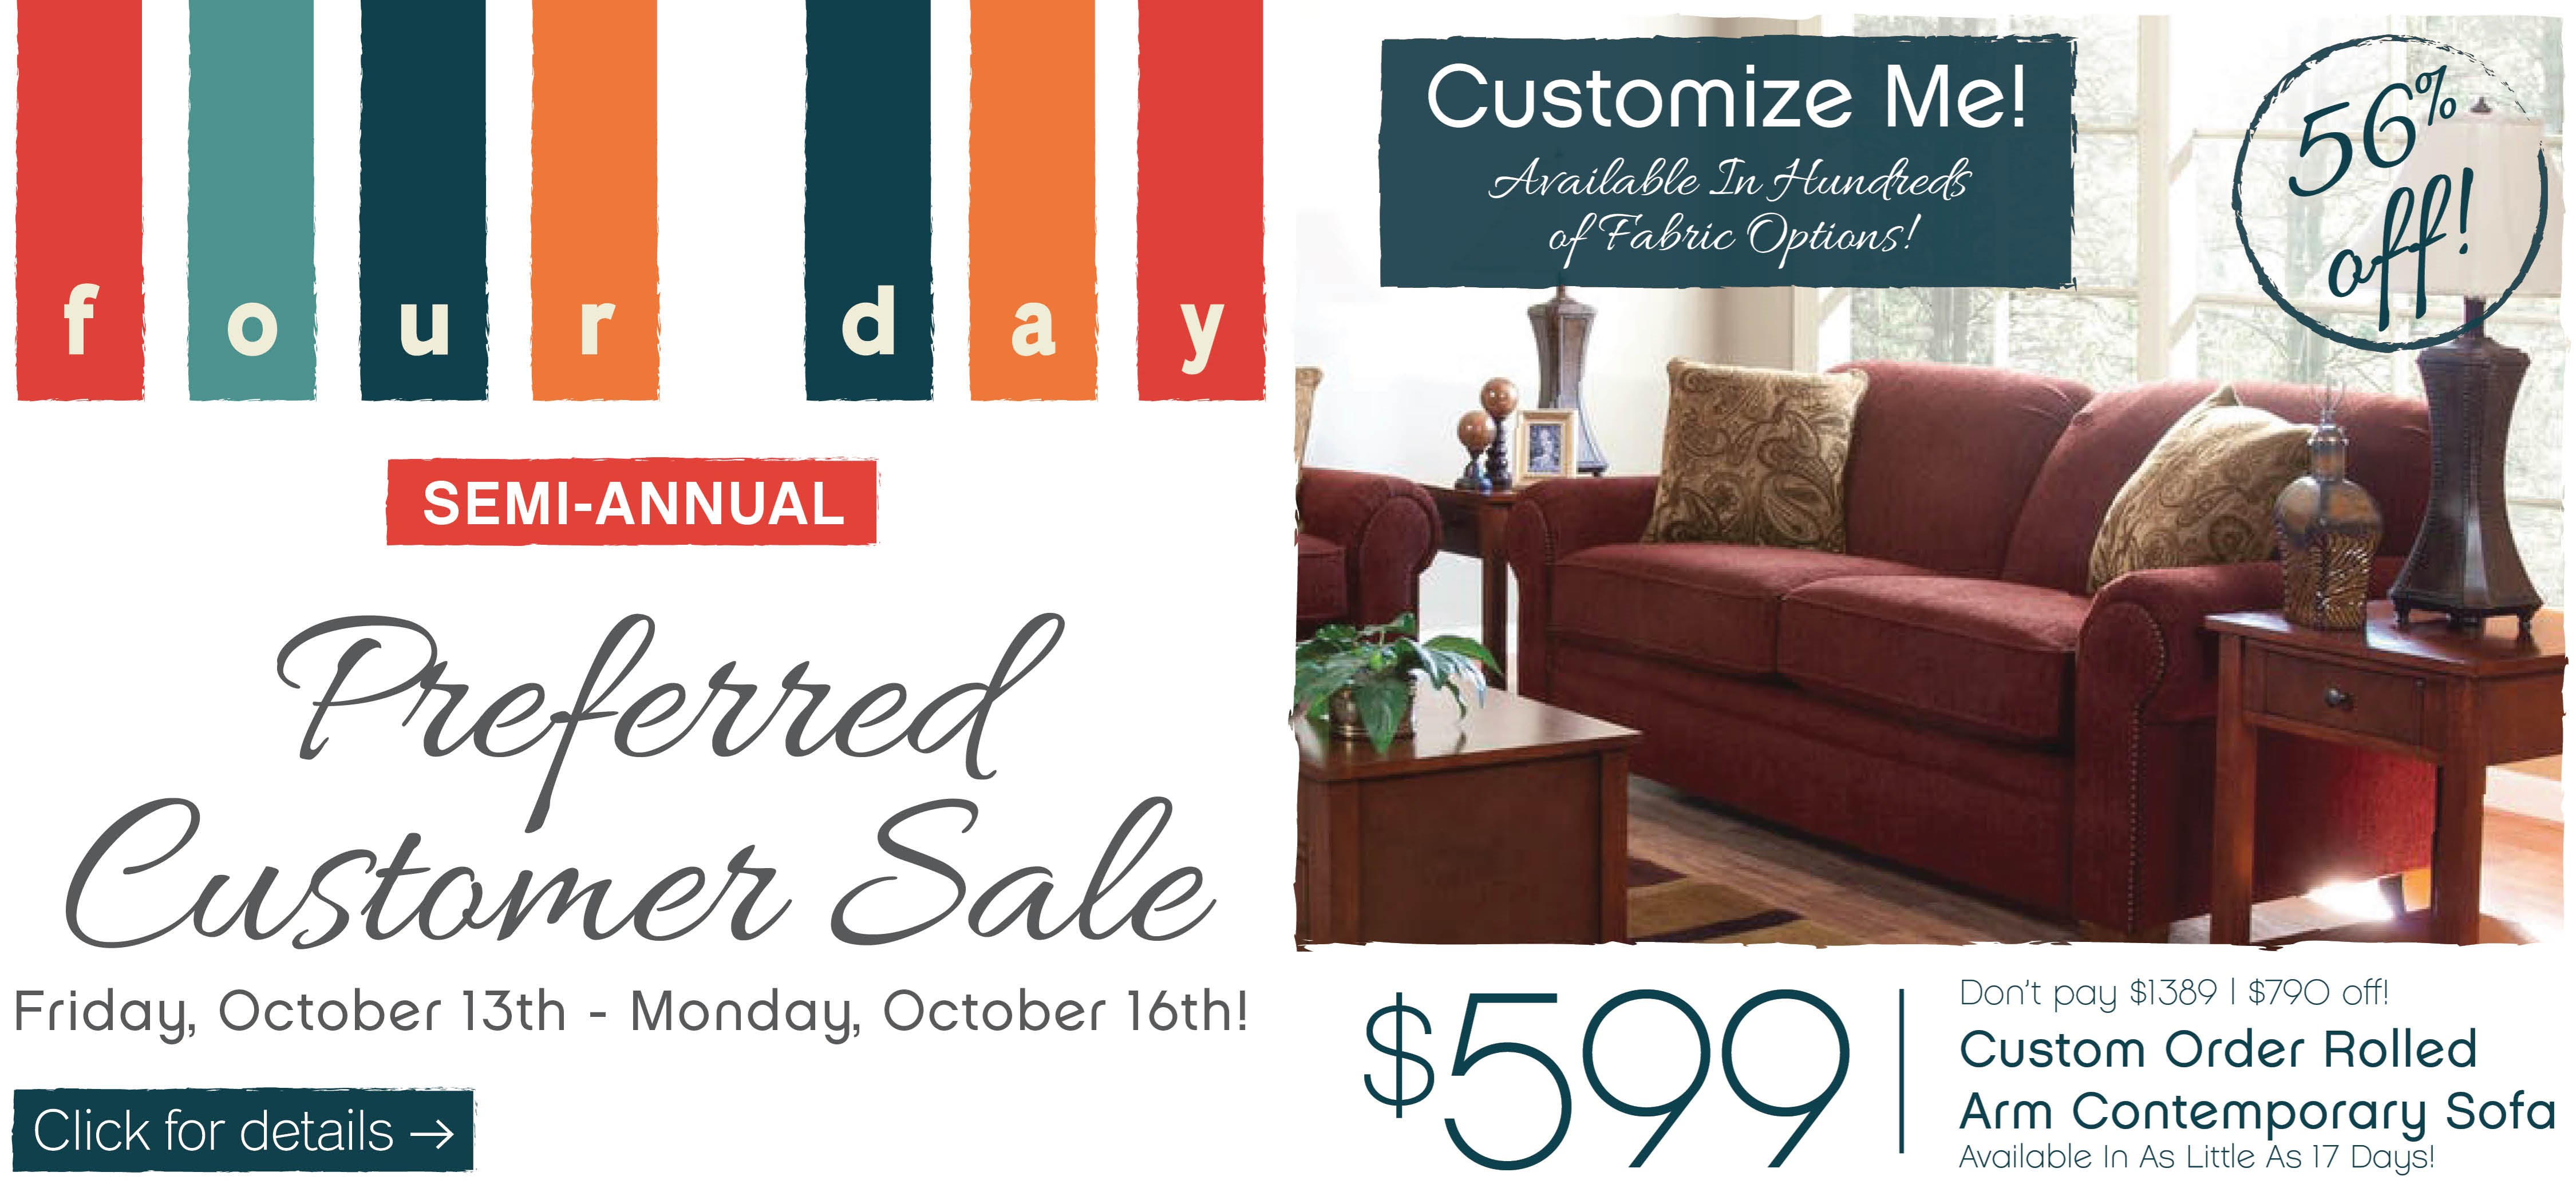 Warm Up With Fall Style Furniture ApplianceMart Four Day